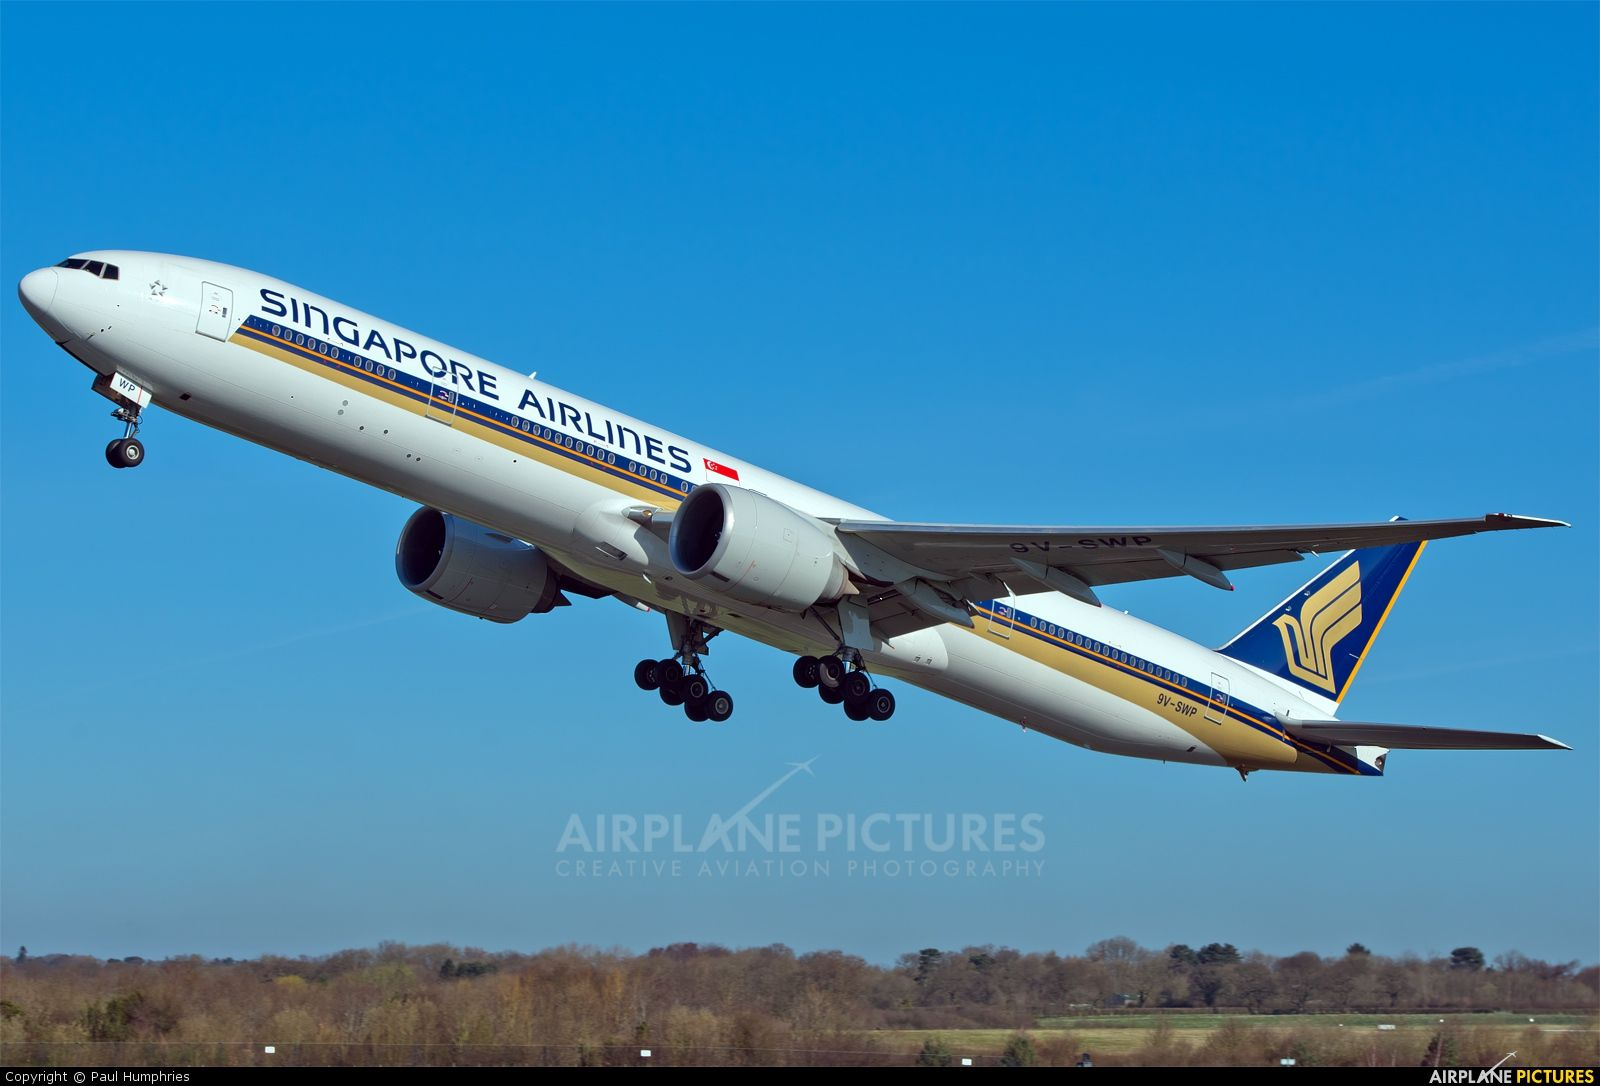 High Quality Photo Of Singapore Airlines Boeing 777 300ER By Paul Humphries Visit Airplane